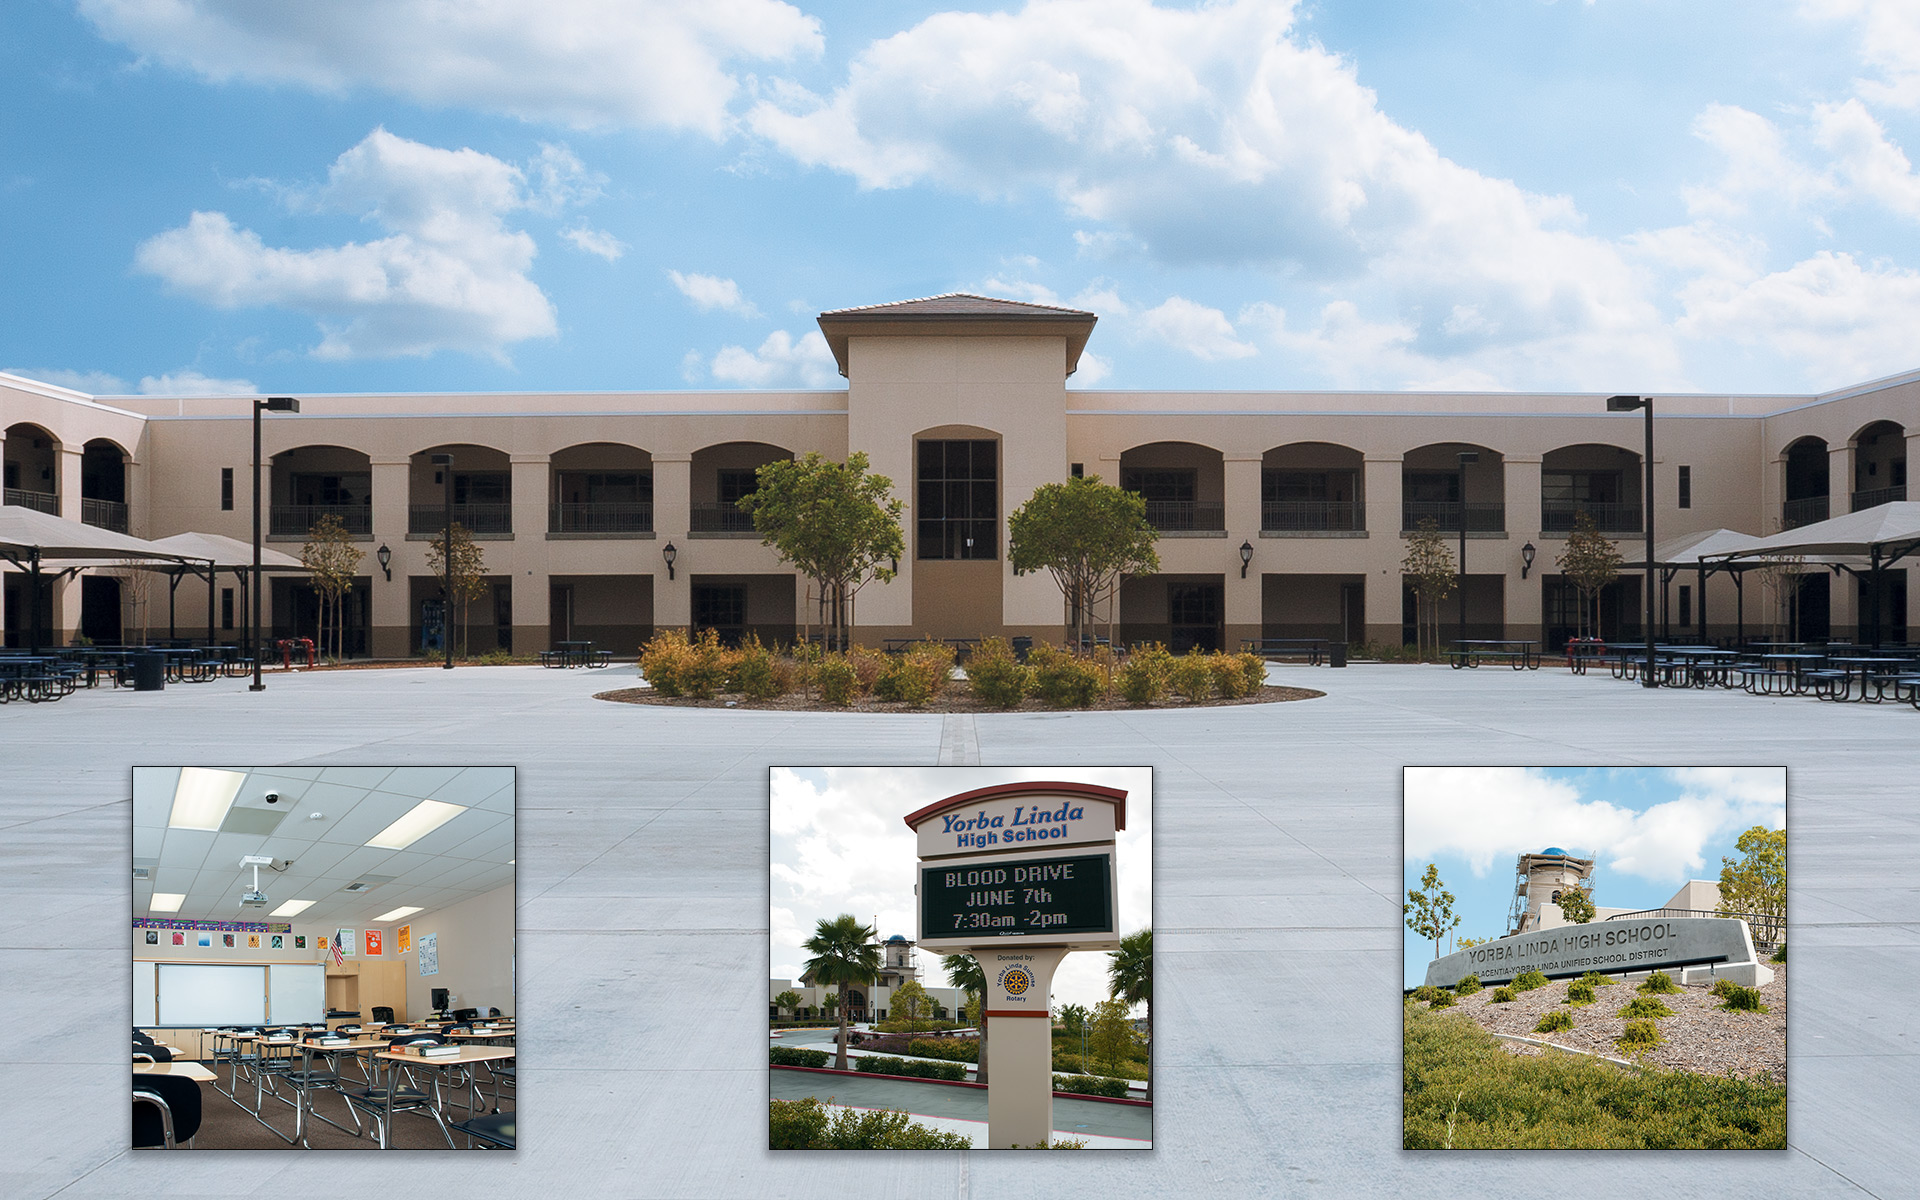 CPlacentia-Yorba Linda Unified School District - Building